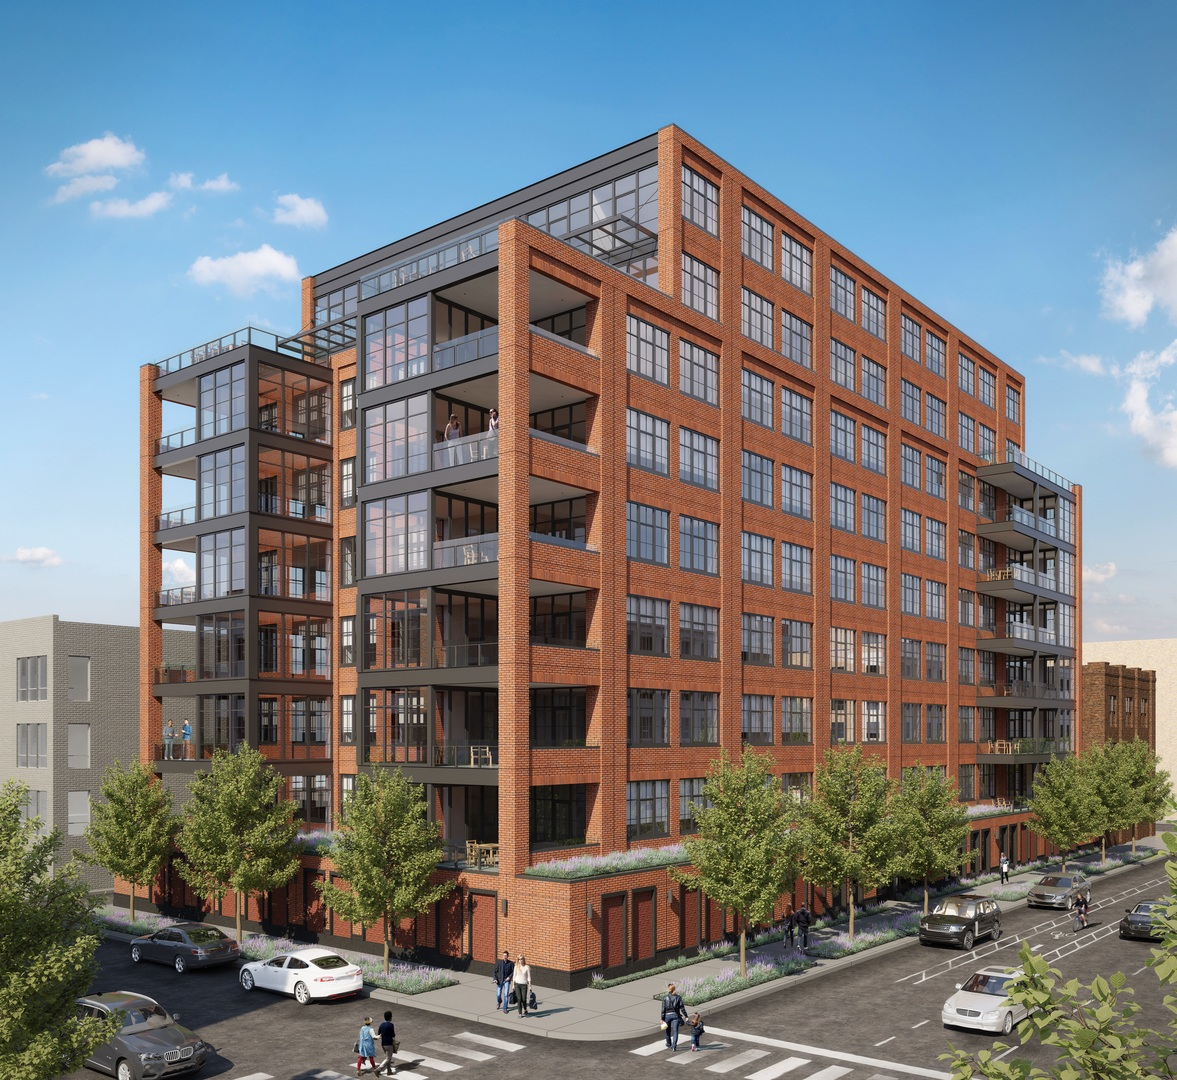 Кондоминиум для того Продажа на 1109 West Washington Boulevard #3B 1109 West Washington Boulevard #3B Chicago, Иллинойс,60607 Соединенные Штаты